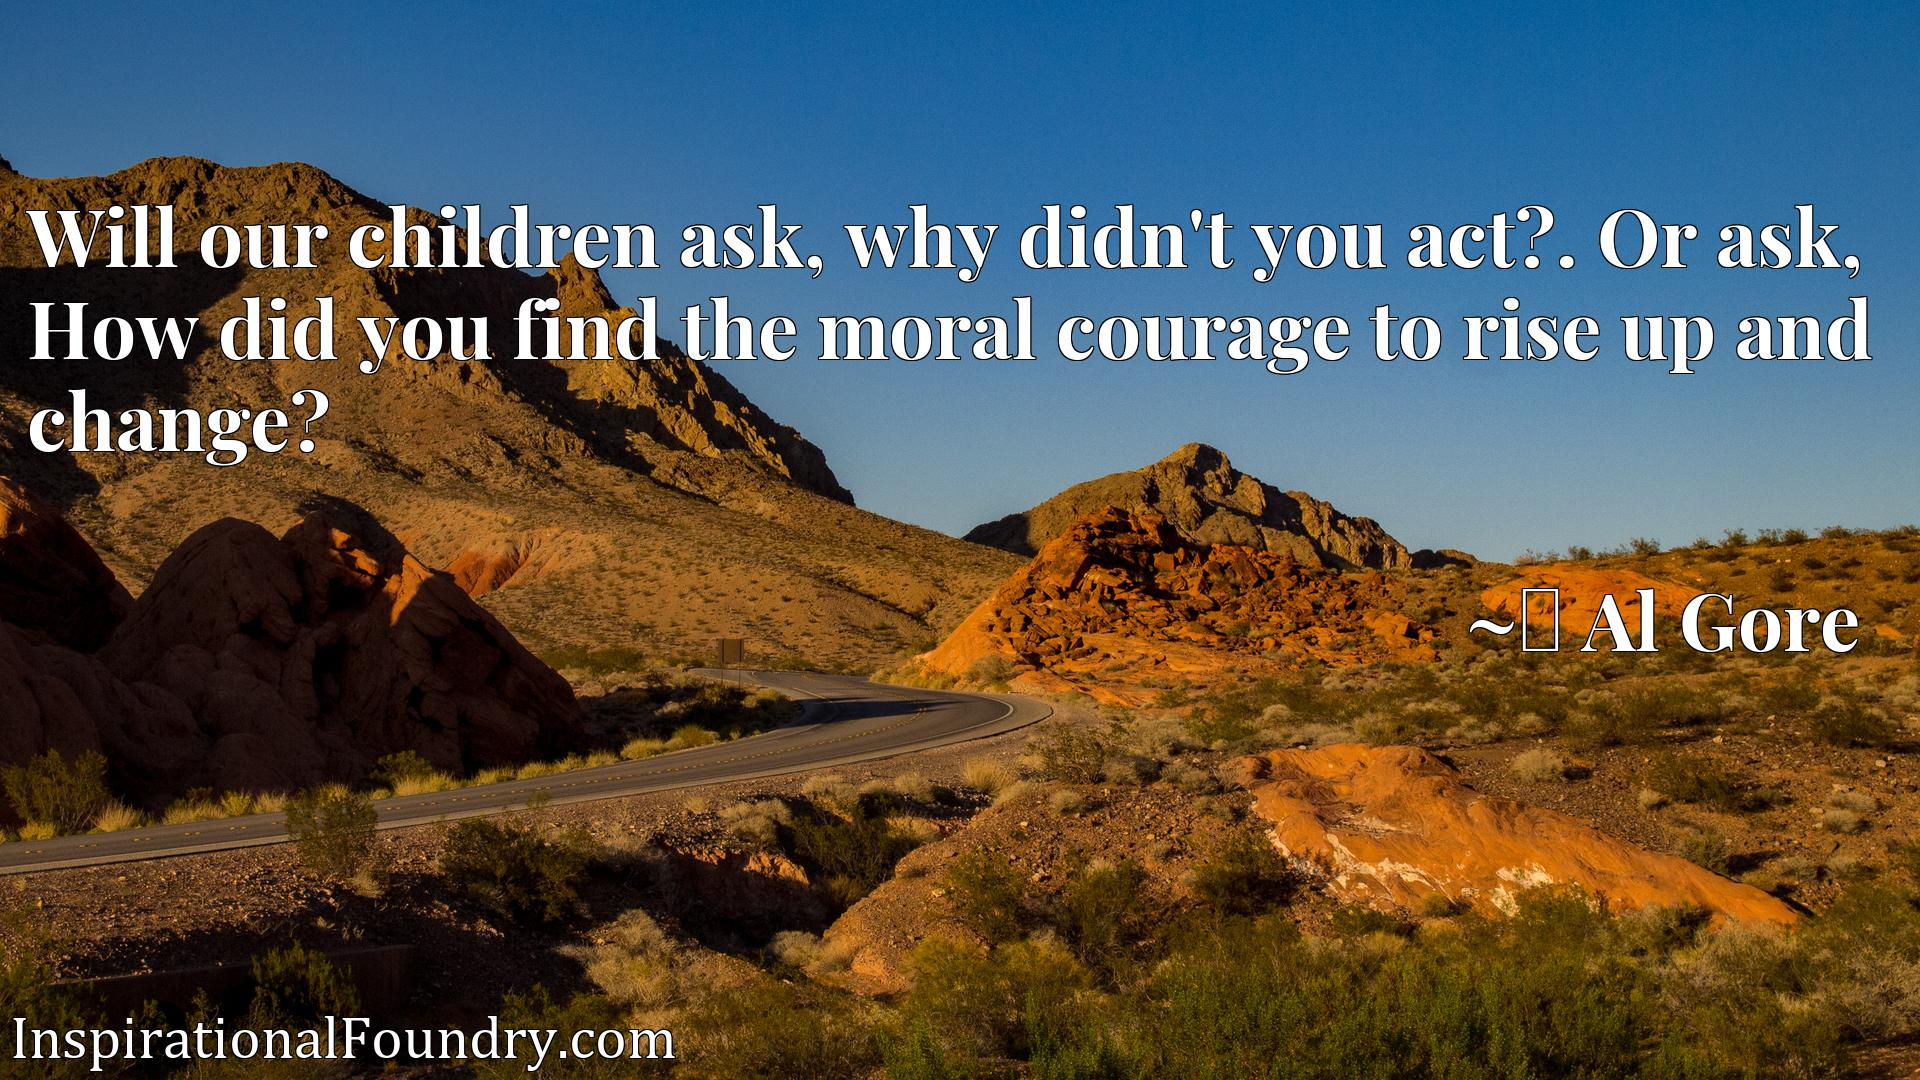 Will our children ask, why didn't you act?x9d. Or ask, How did you find the moral courage to rise up and change?